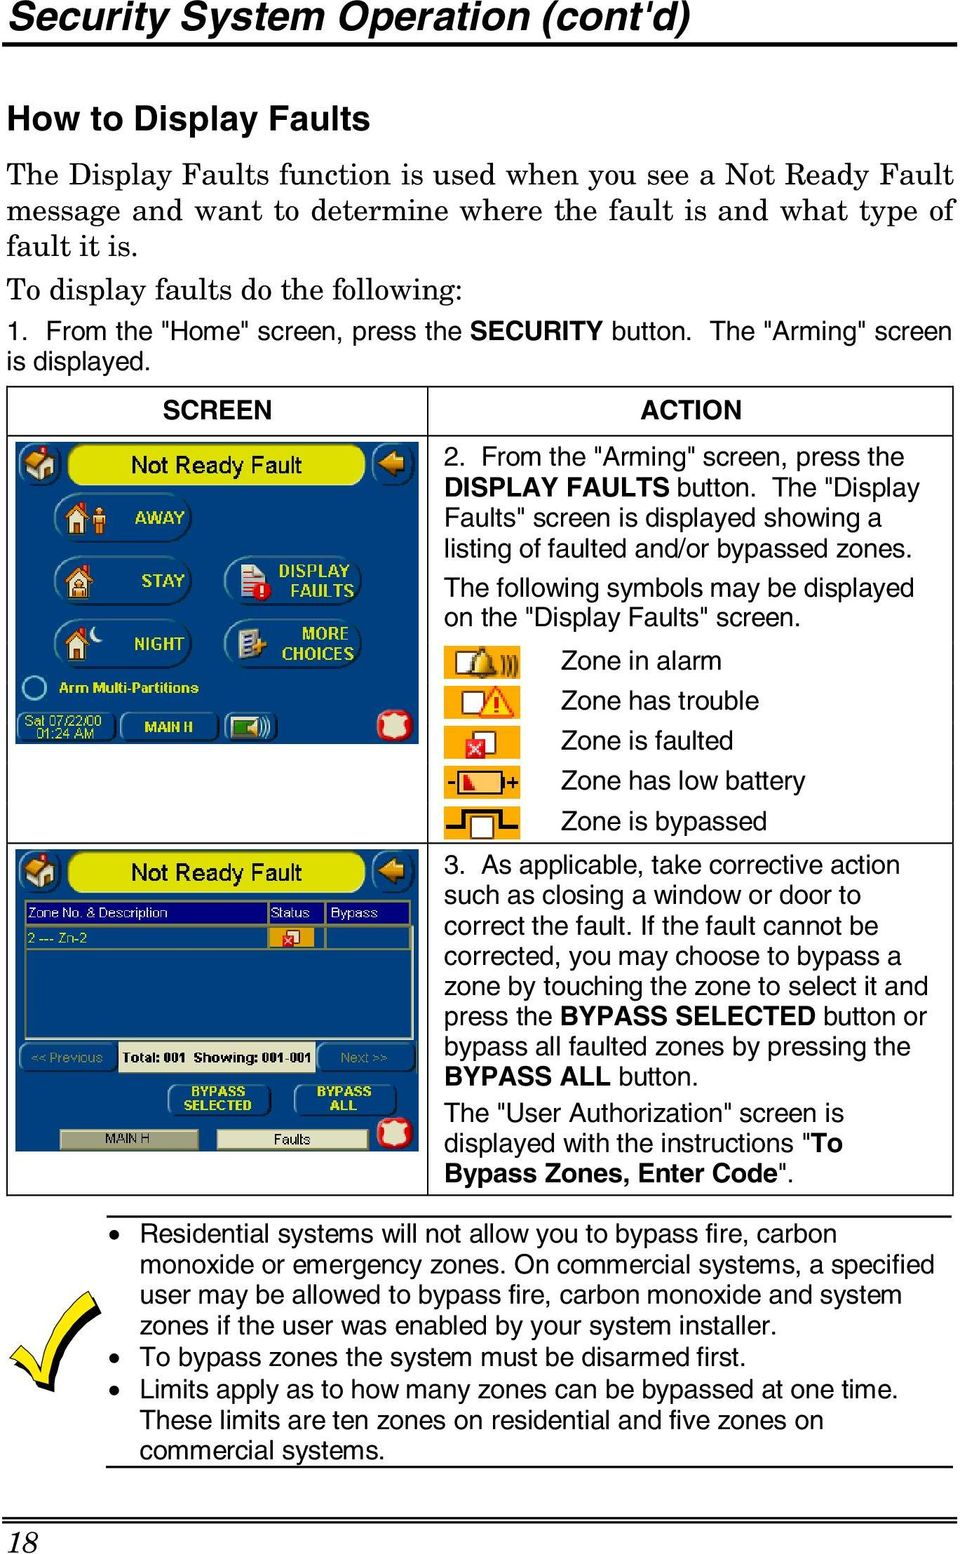 "From the ""Arming"" screen, press the DISPLAY FAULTS button. The ""Display Faults"" screen is displayed showing a listing of faulted and/or bypassed zones."